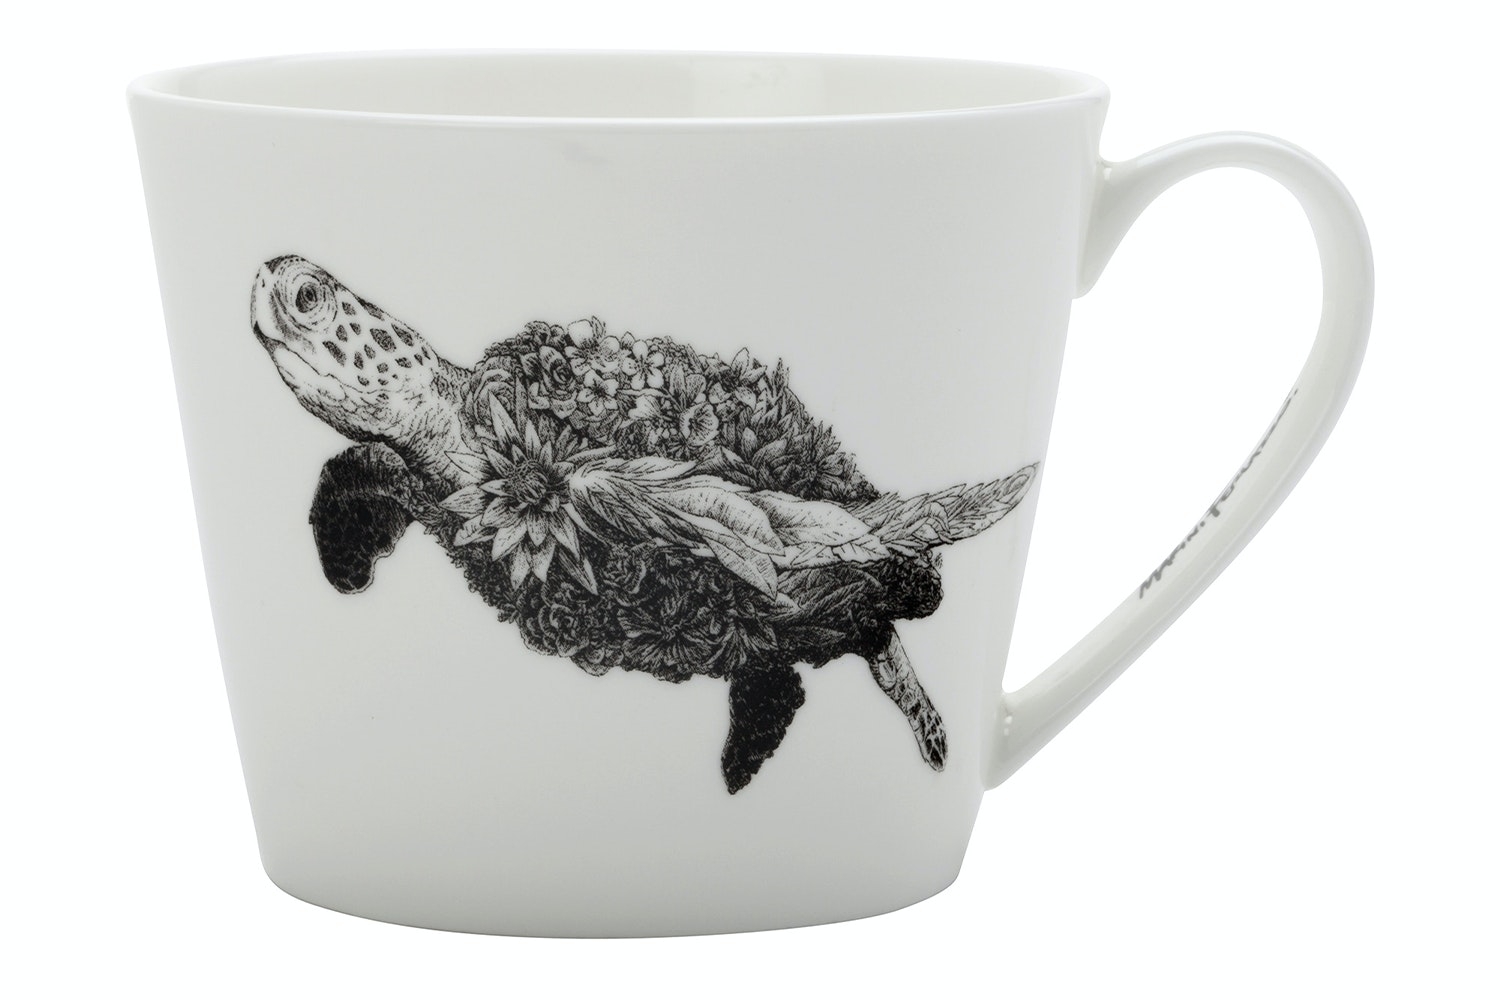 Marini Ferlazzo Wildlife Sea Turtle Mug